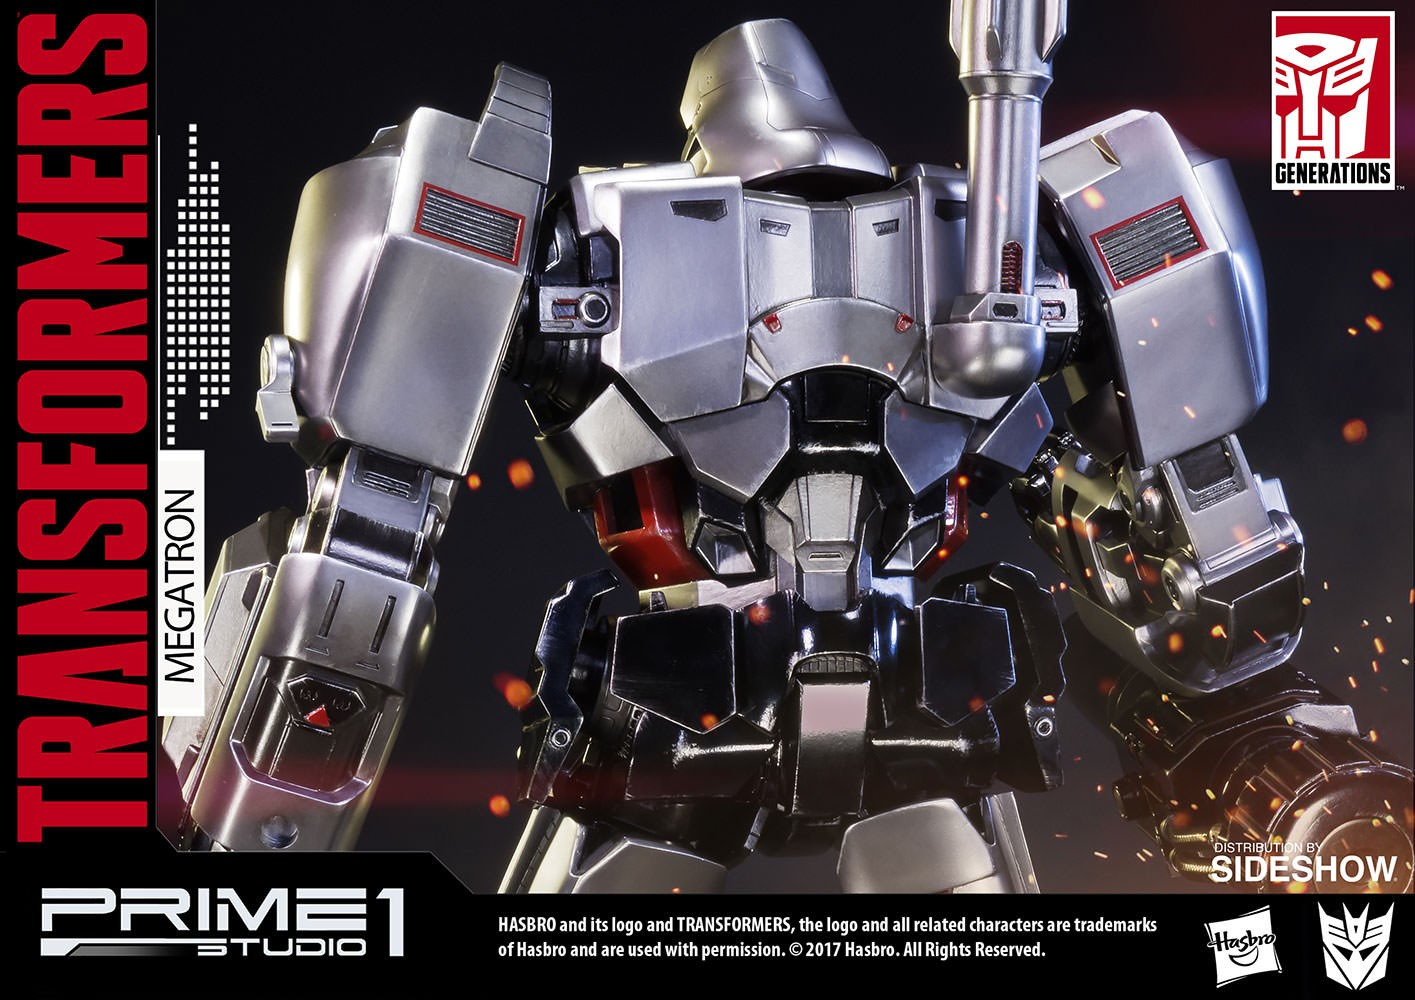 Transformers News: Prime 1 Studio Generation 1 Megatron New Up-Close Images